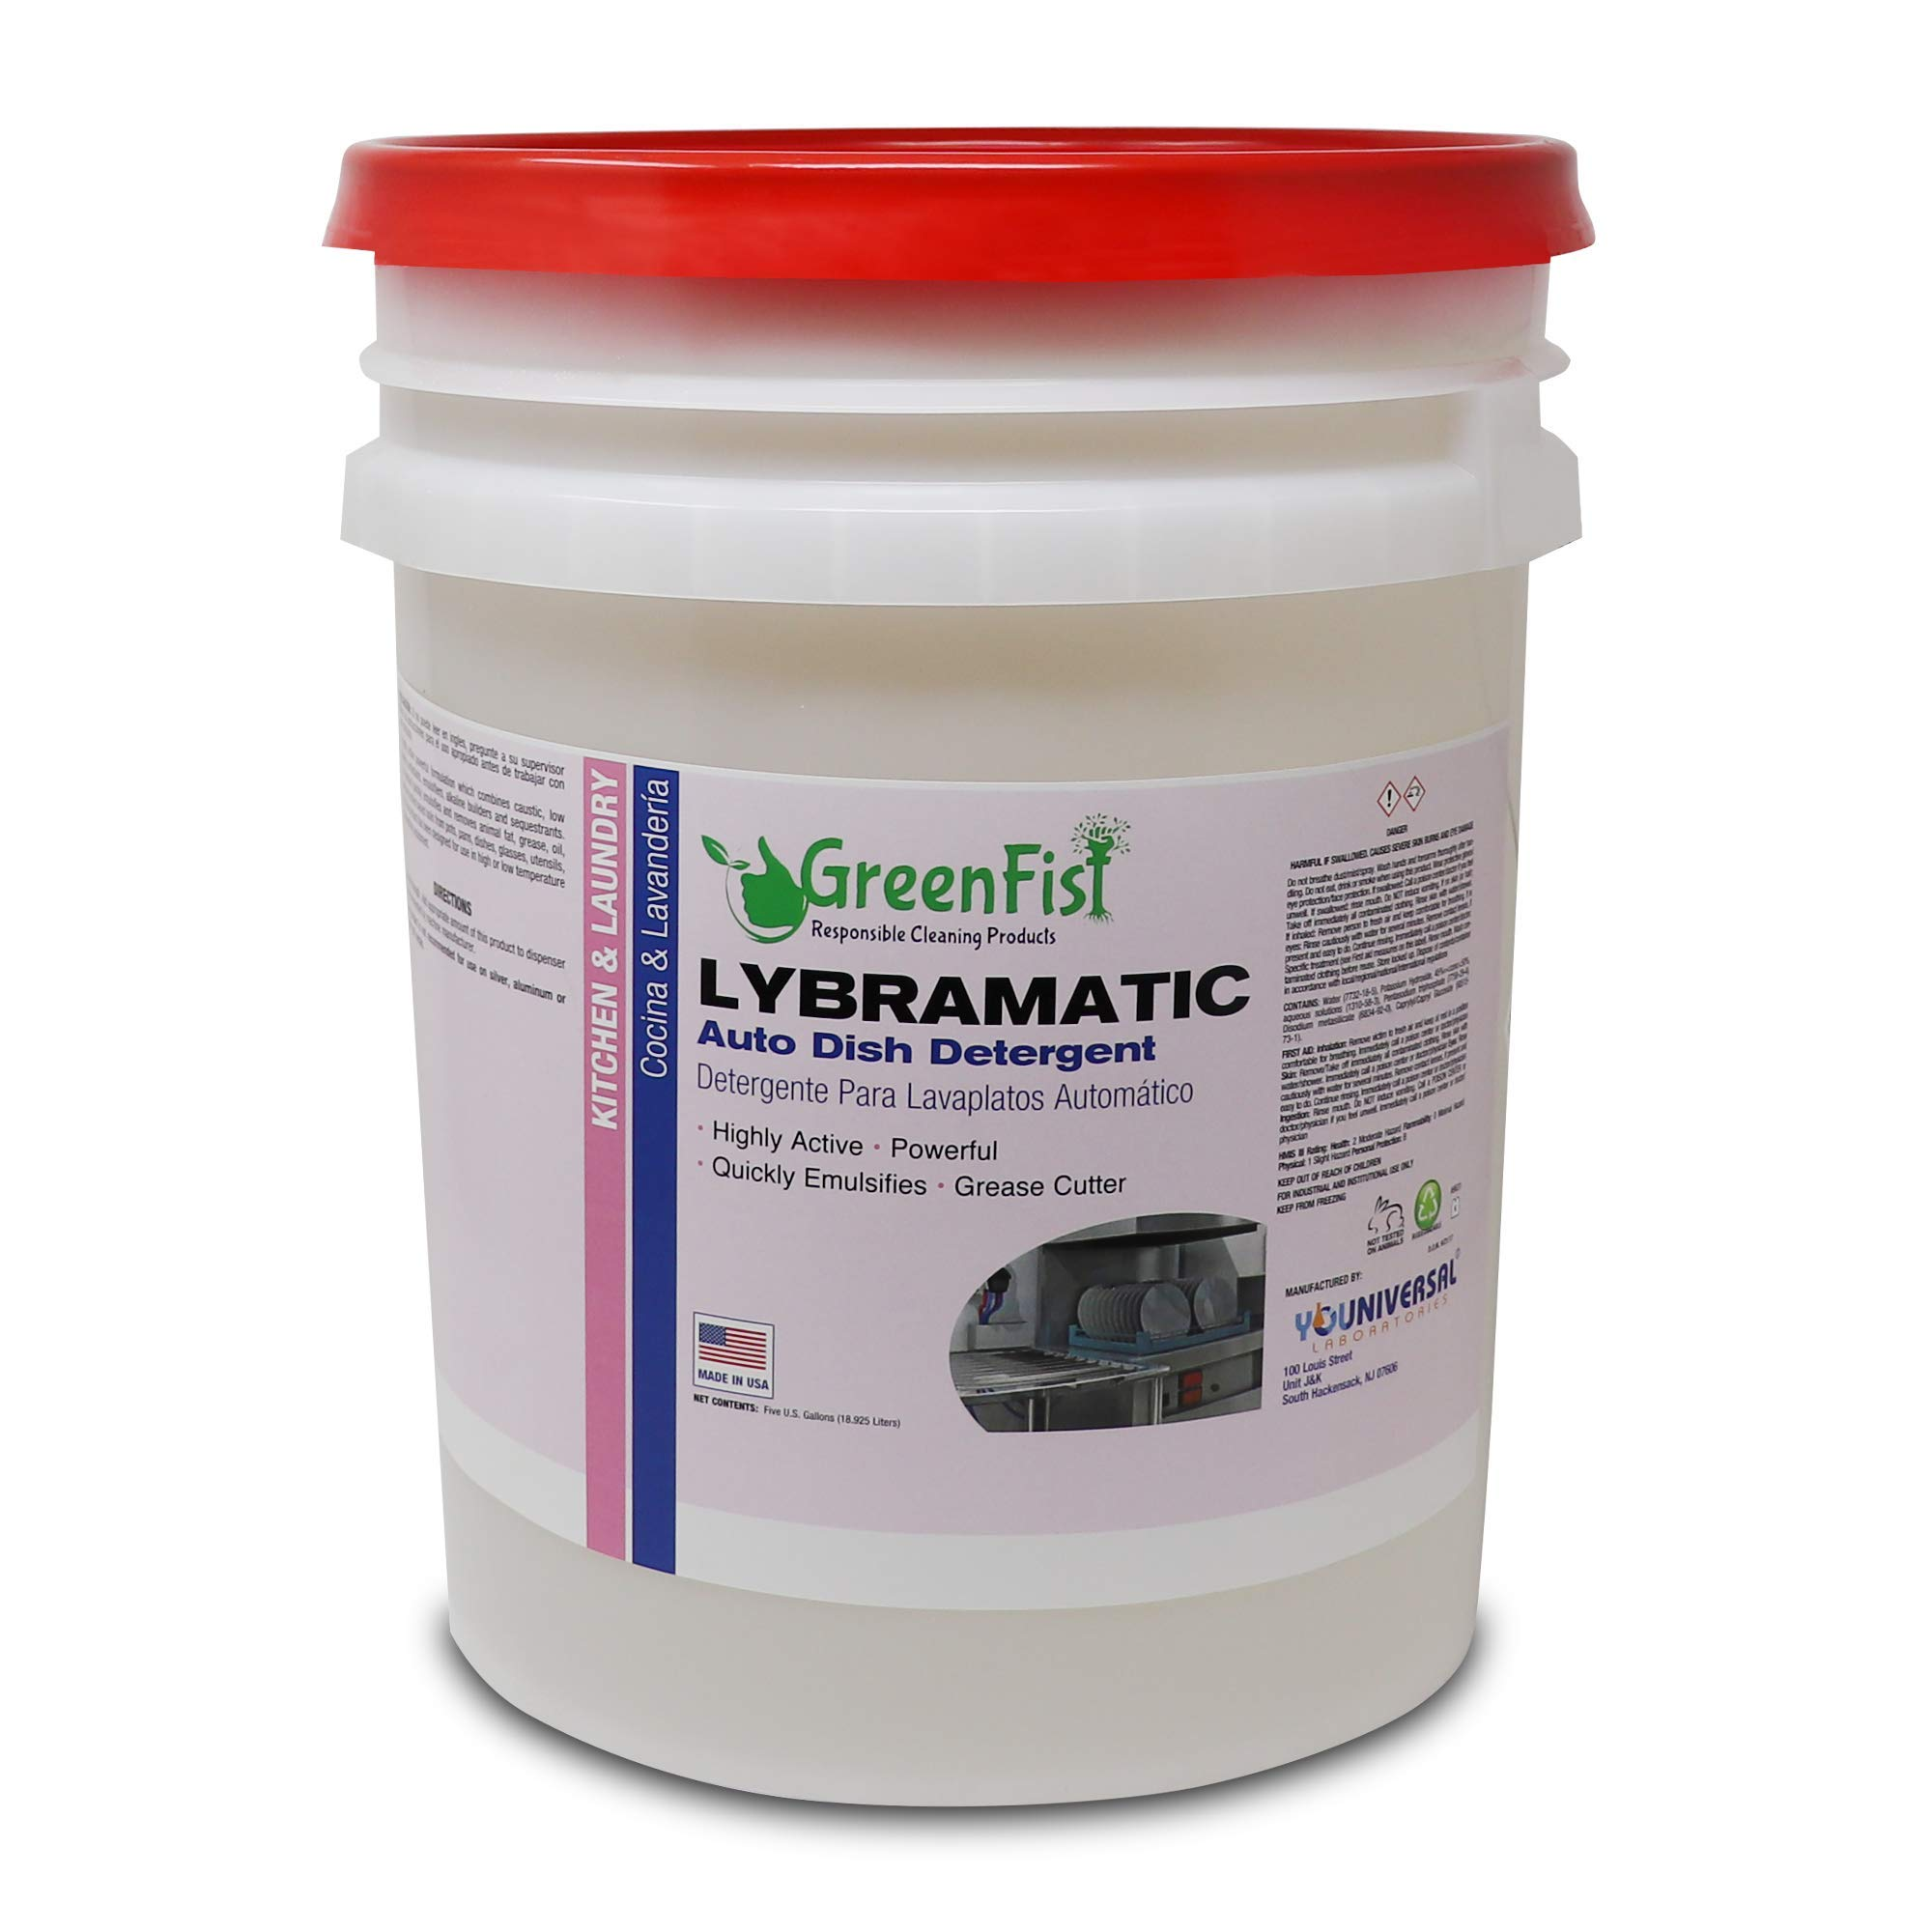 Commercial Dishwasher Detergent Lybramatic [Ready-to-Use] 5 Gallon Pail